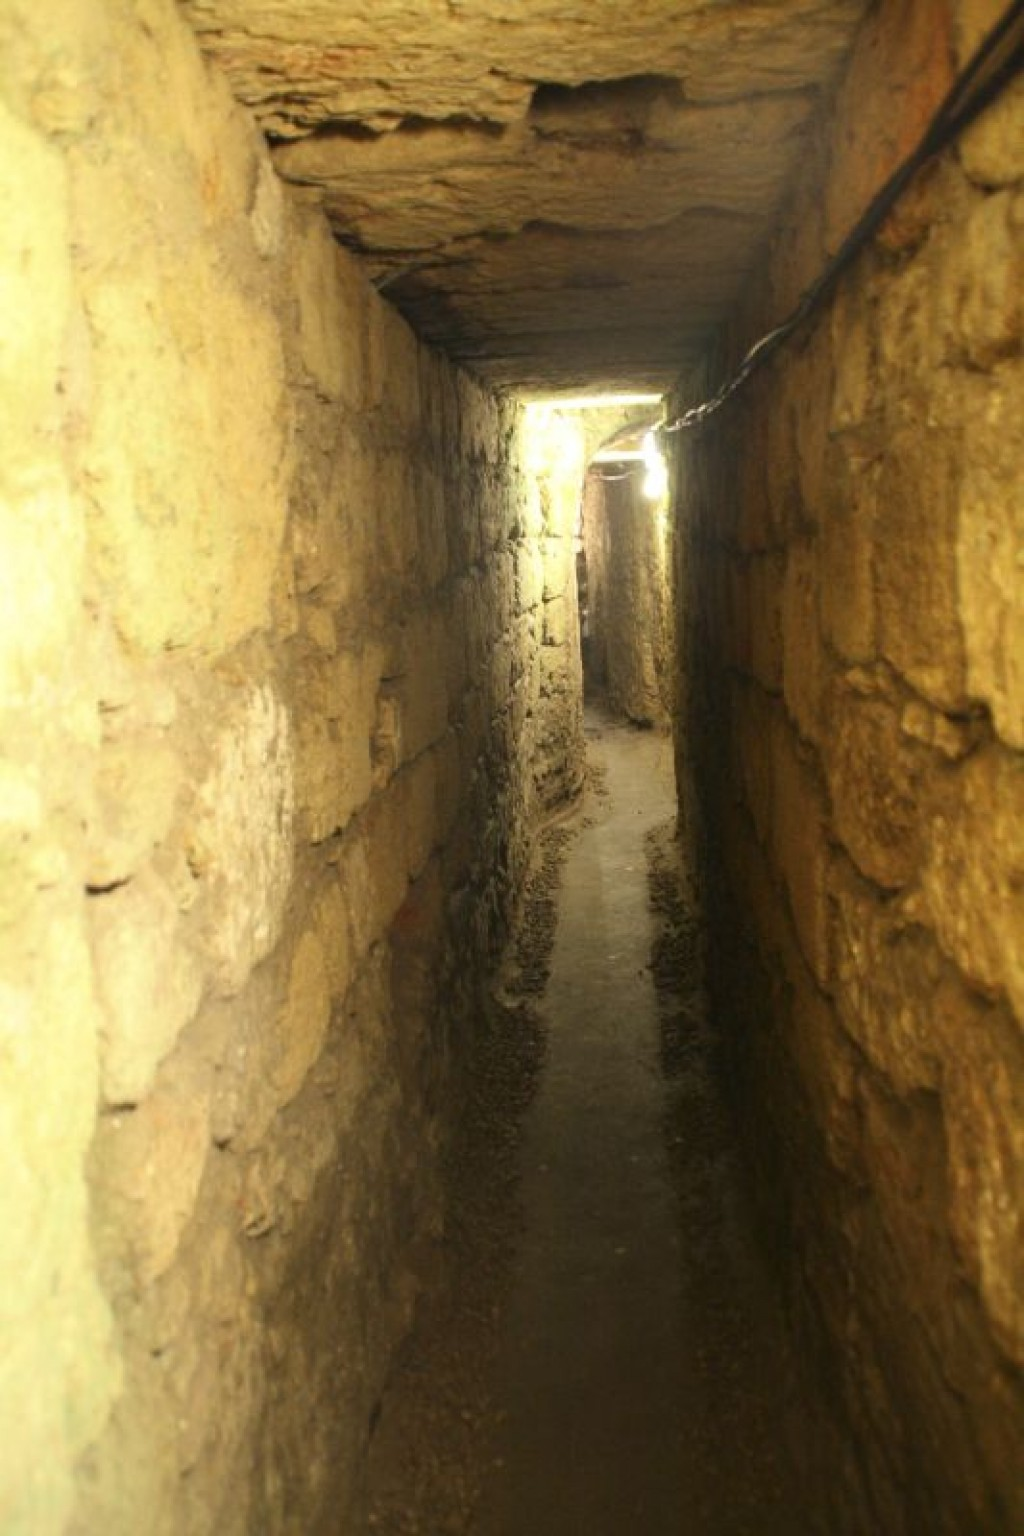 Tunnel underneath the old city leading to a tombstone of the last bishop of Nazareth.